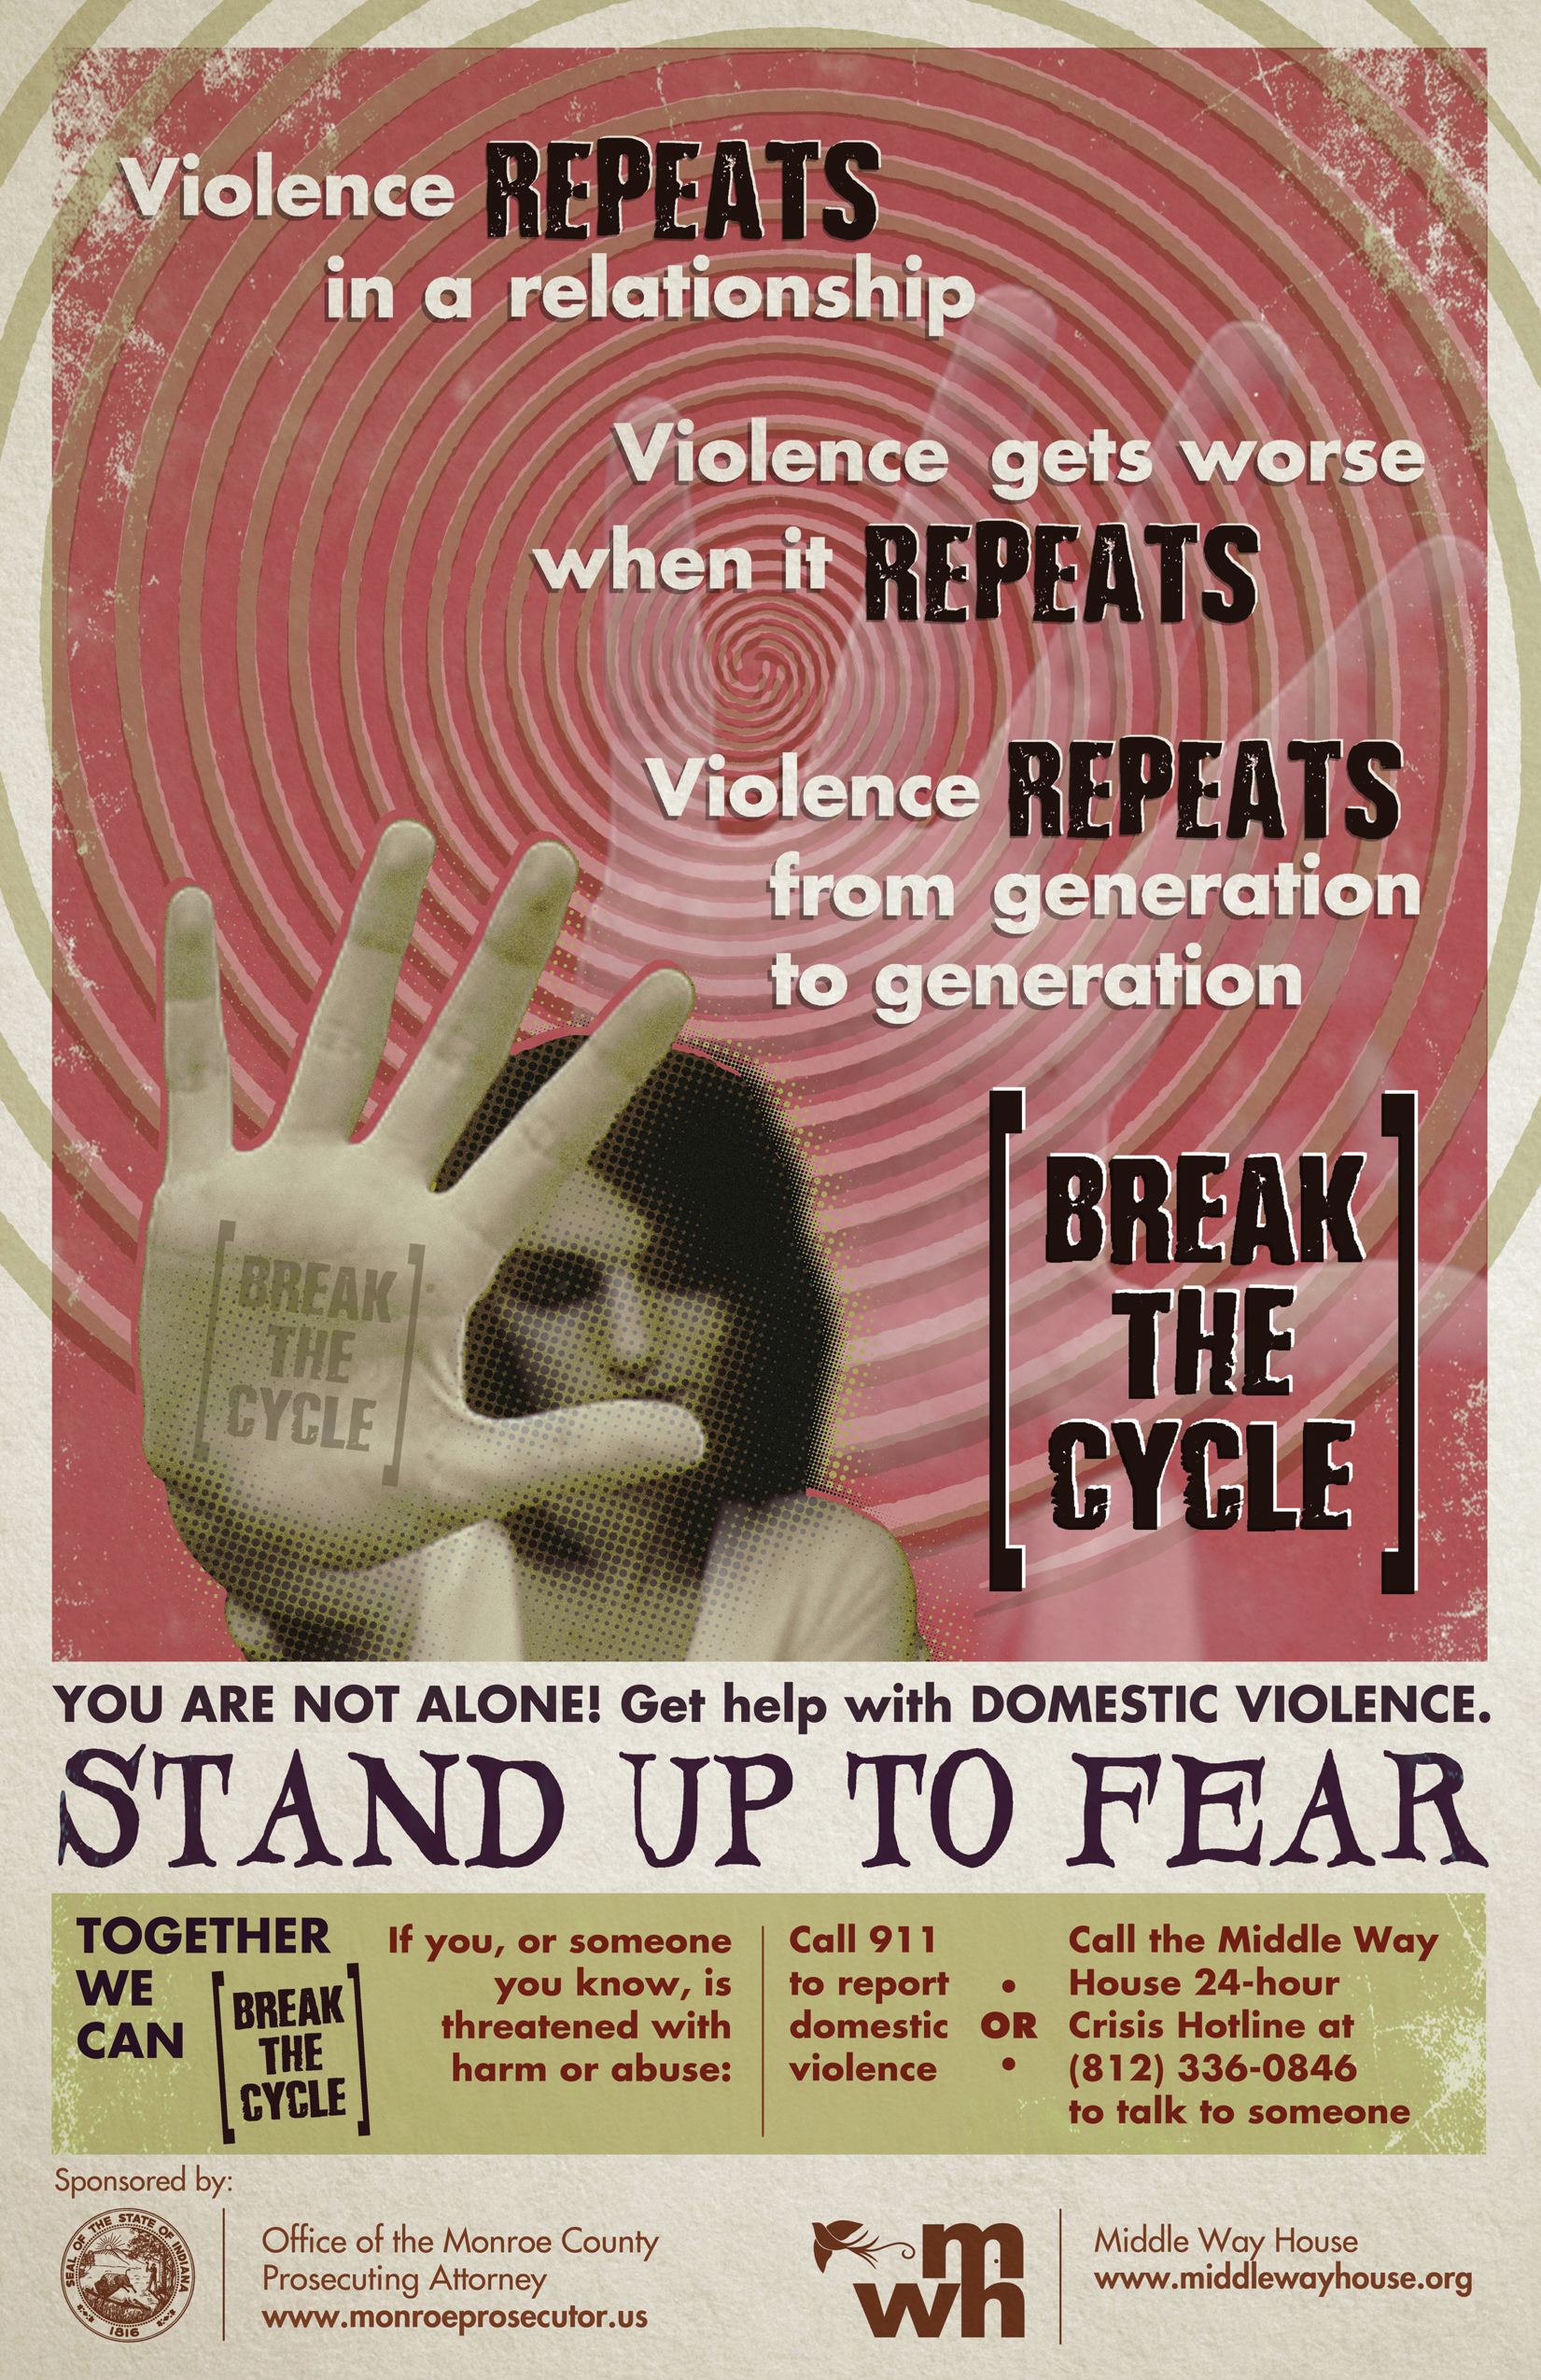 Heres How Witnessing Violence Harms >> Domestic Violence Monroe County Indiana Prosecutor